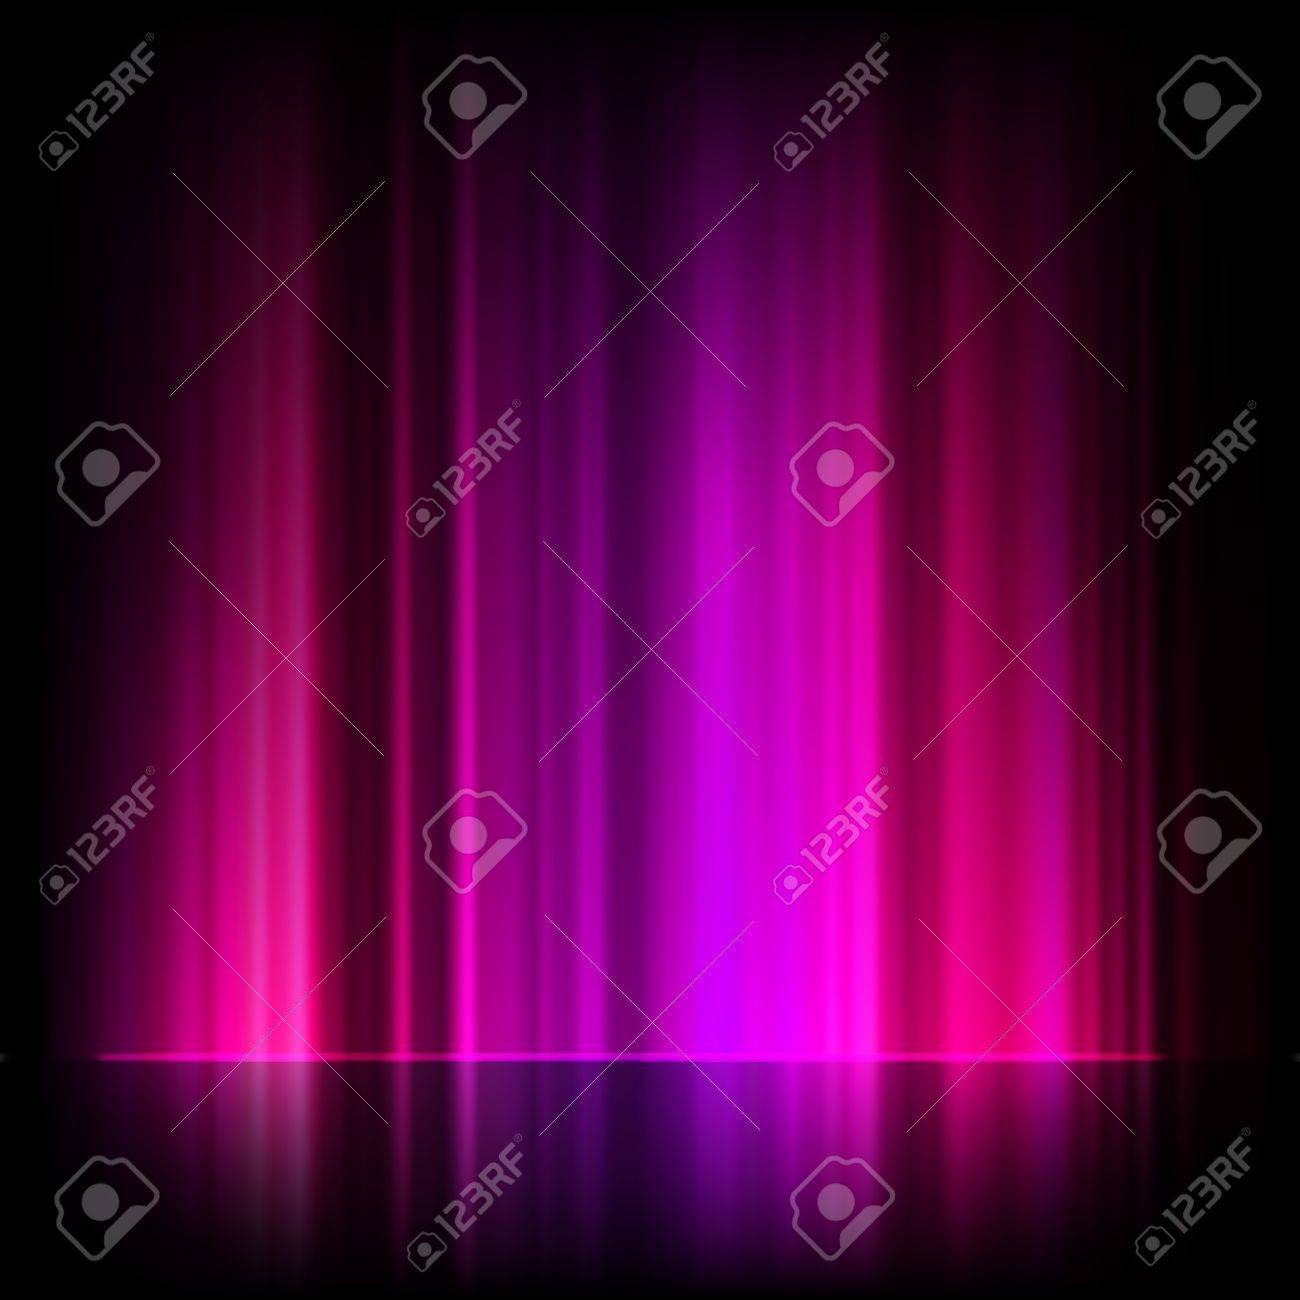 Abstract purple background. Stock Vector - 9527946